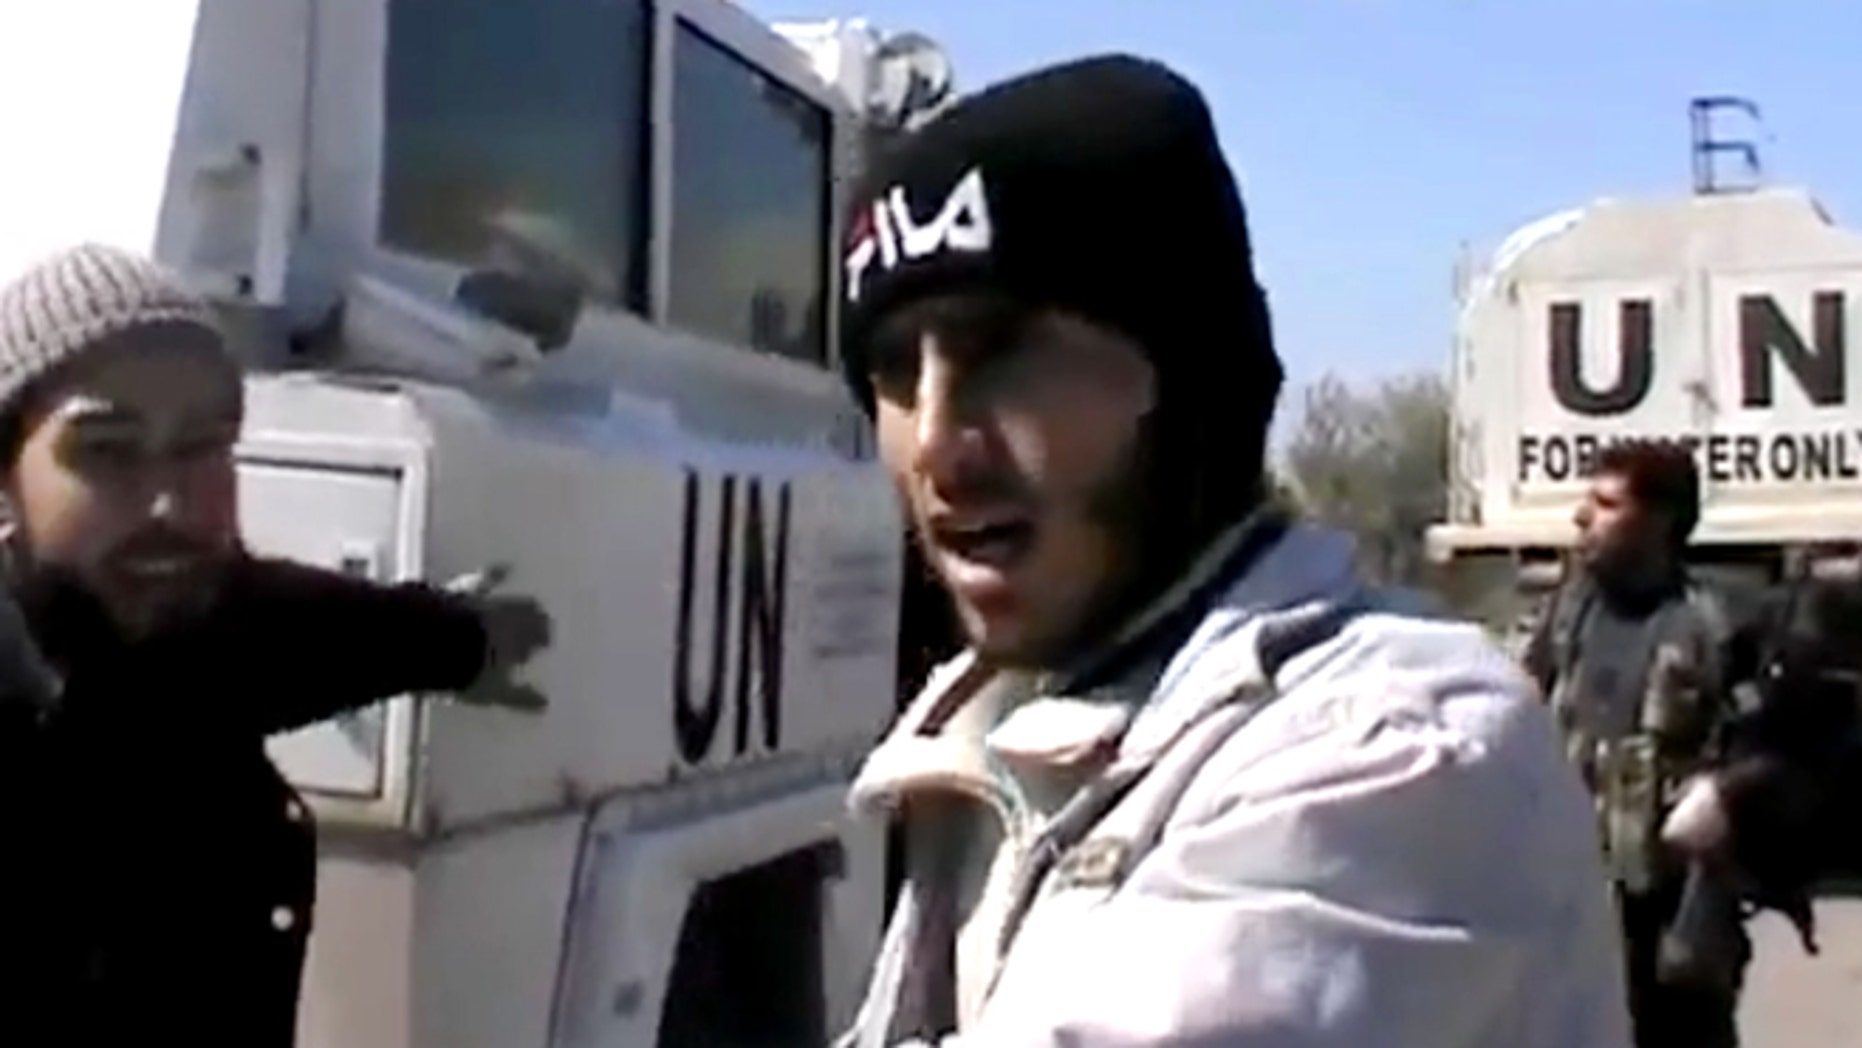 In this Wednesday, March 6, 2013 image taken from video obtained from the Ugarit News, which has been authenticated based on its contents and other AP reporting, Free Syrian Army fighters stand next to United Nations Disengagement Observer vehicles near Golan Heights in the southern province of Daraa, Syria.